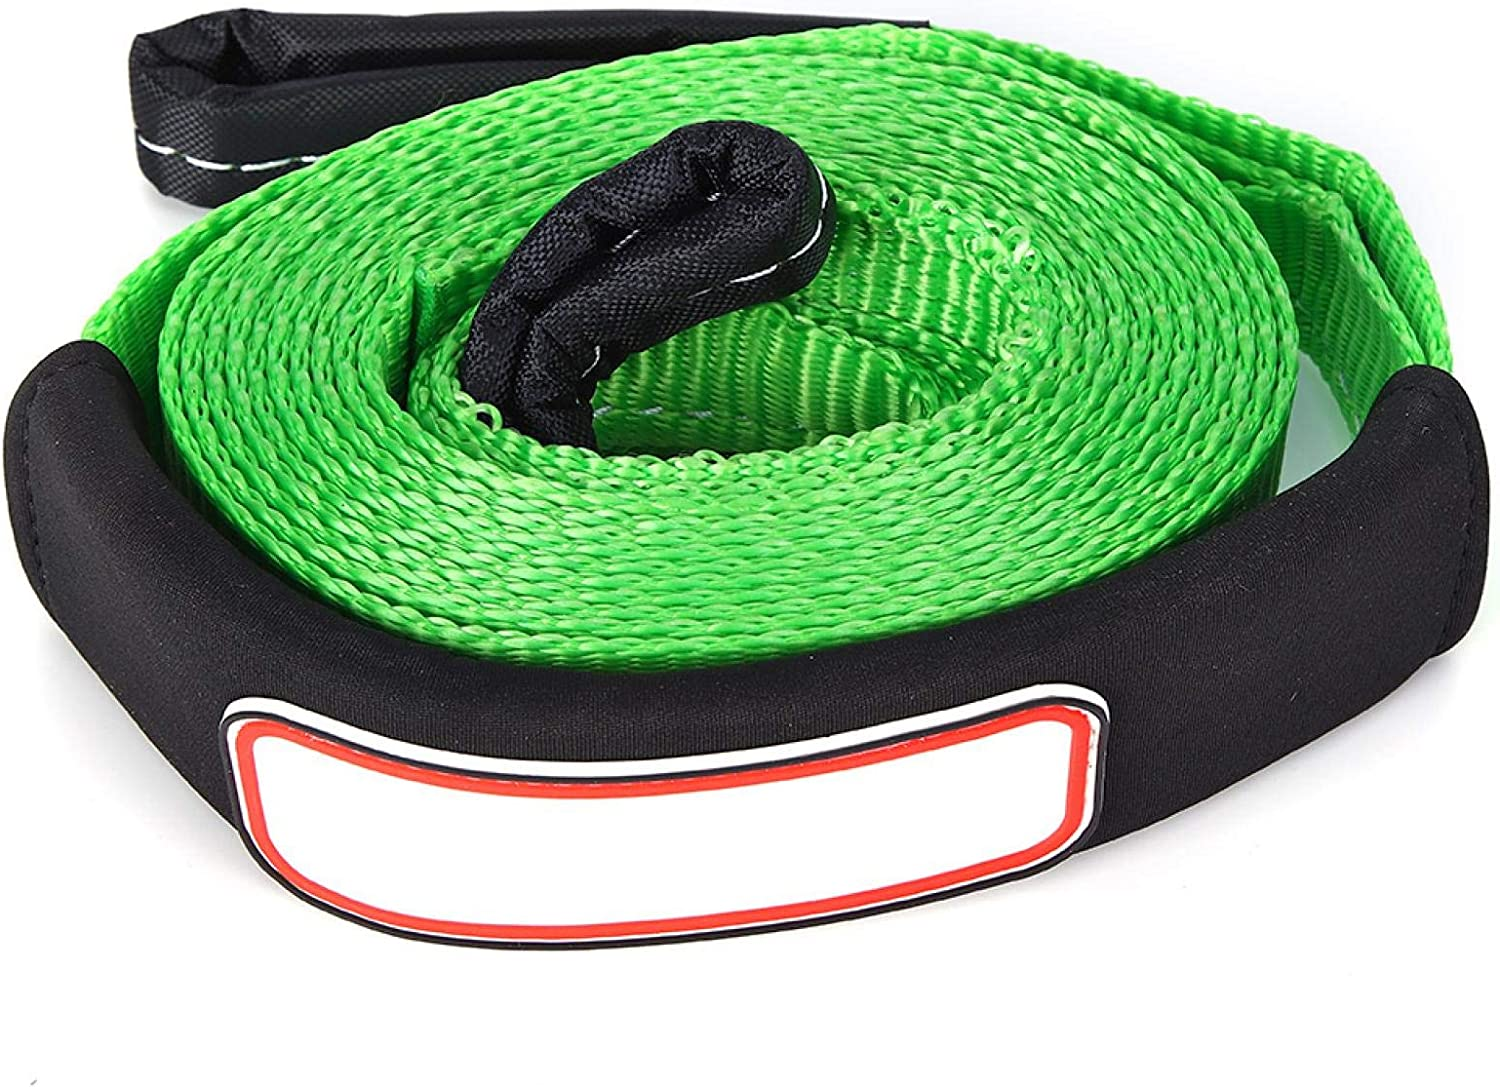 Towing Rope , Qiilu Tow Cable 5m/16.4ft Car Towing Rope Strap To